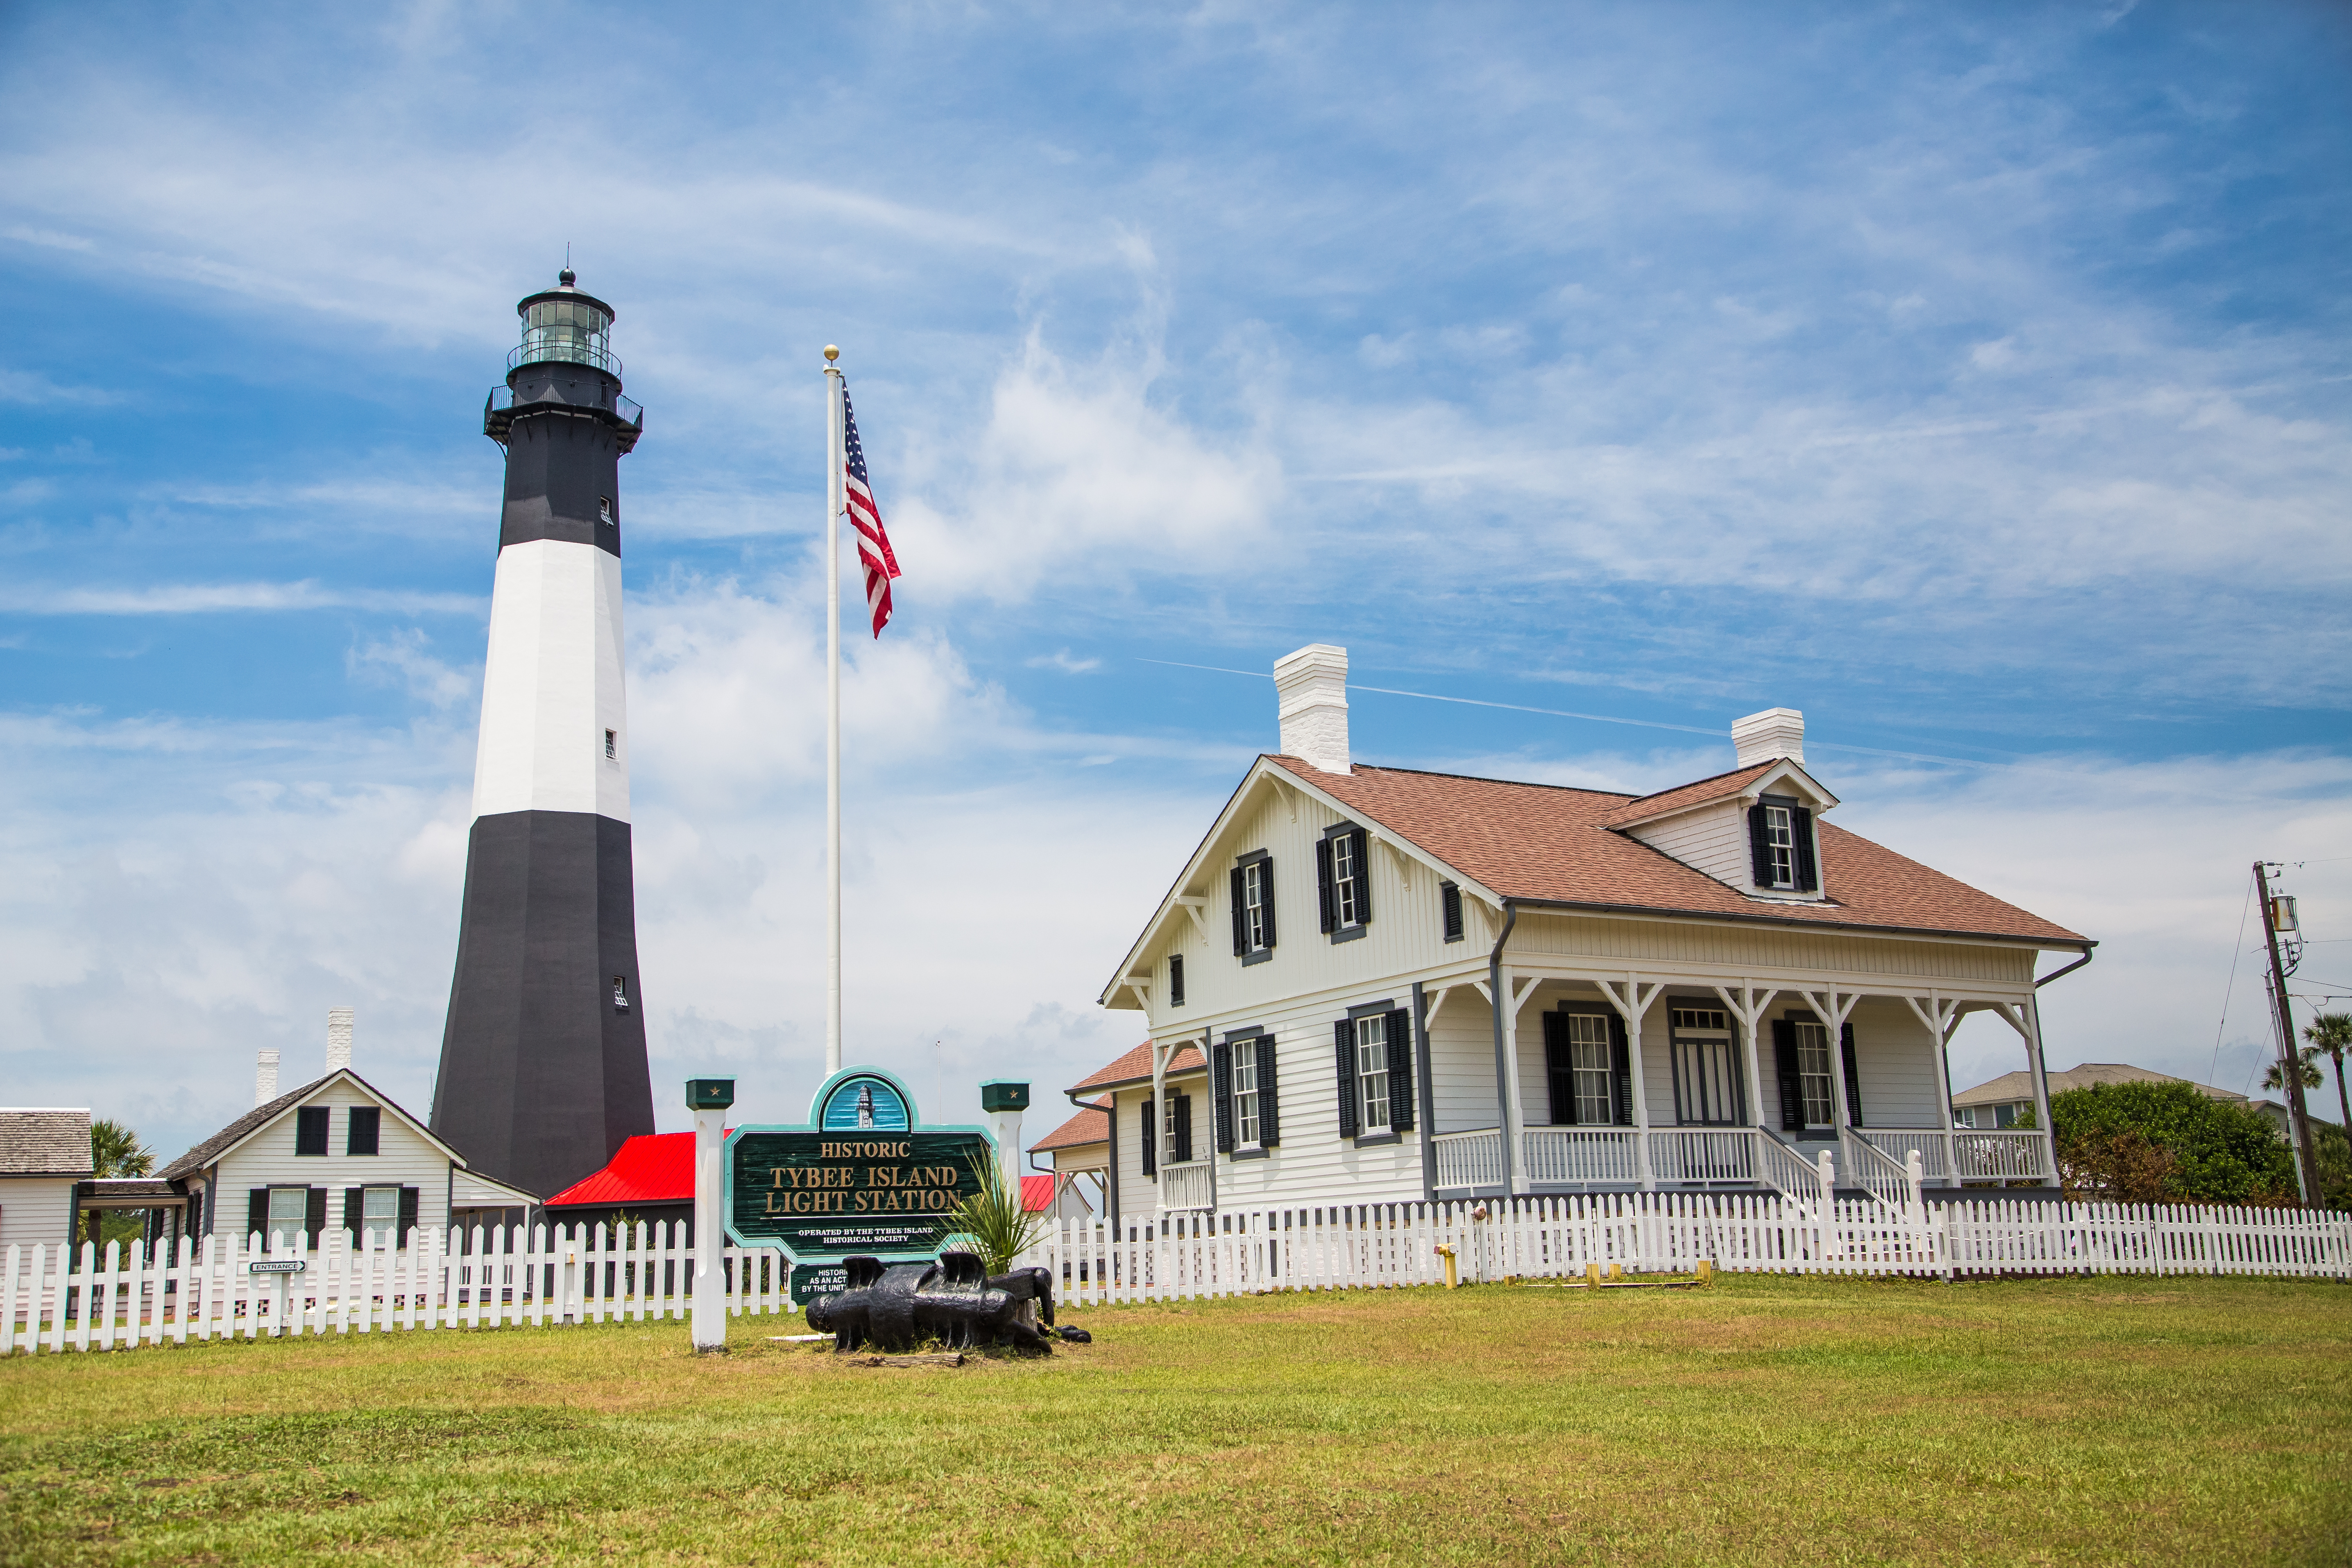 Tybee Island light station and historic landmarks